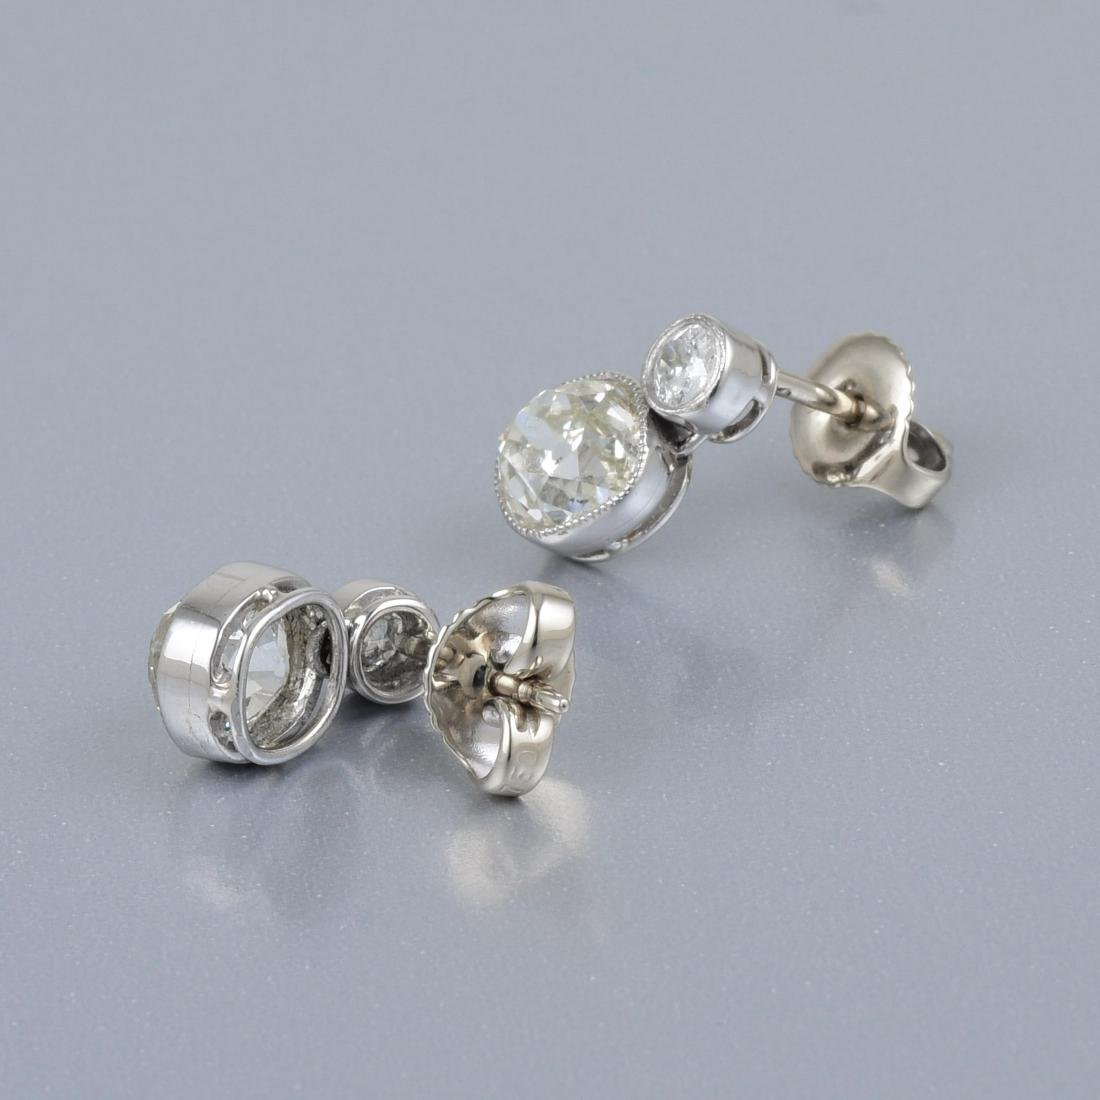 A Pair of Antique Diamond Earrings - 2